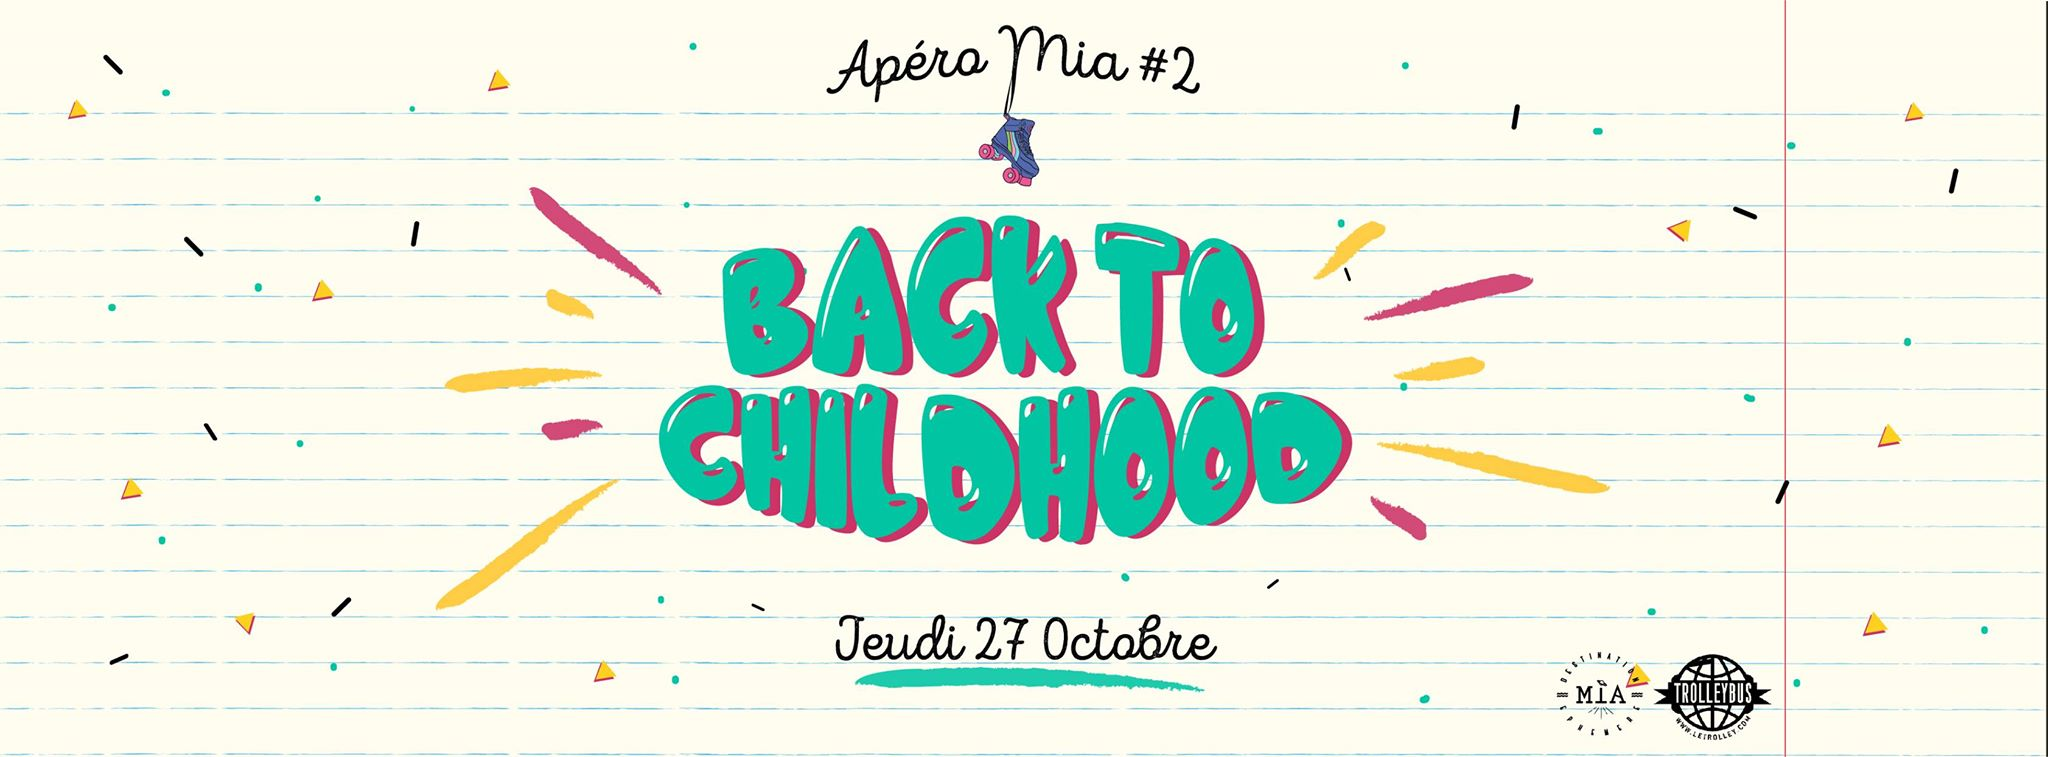 apero-mia-back-to-childhood